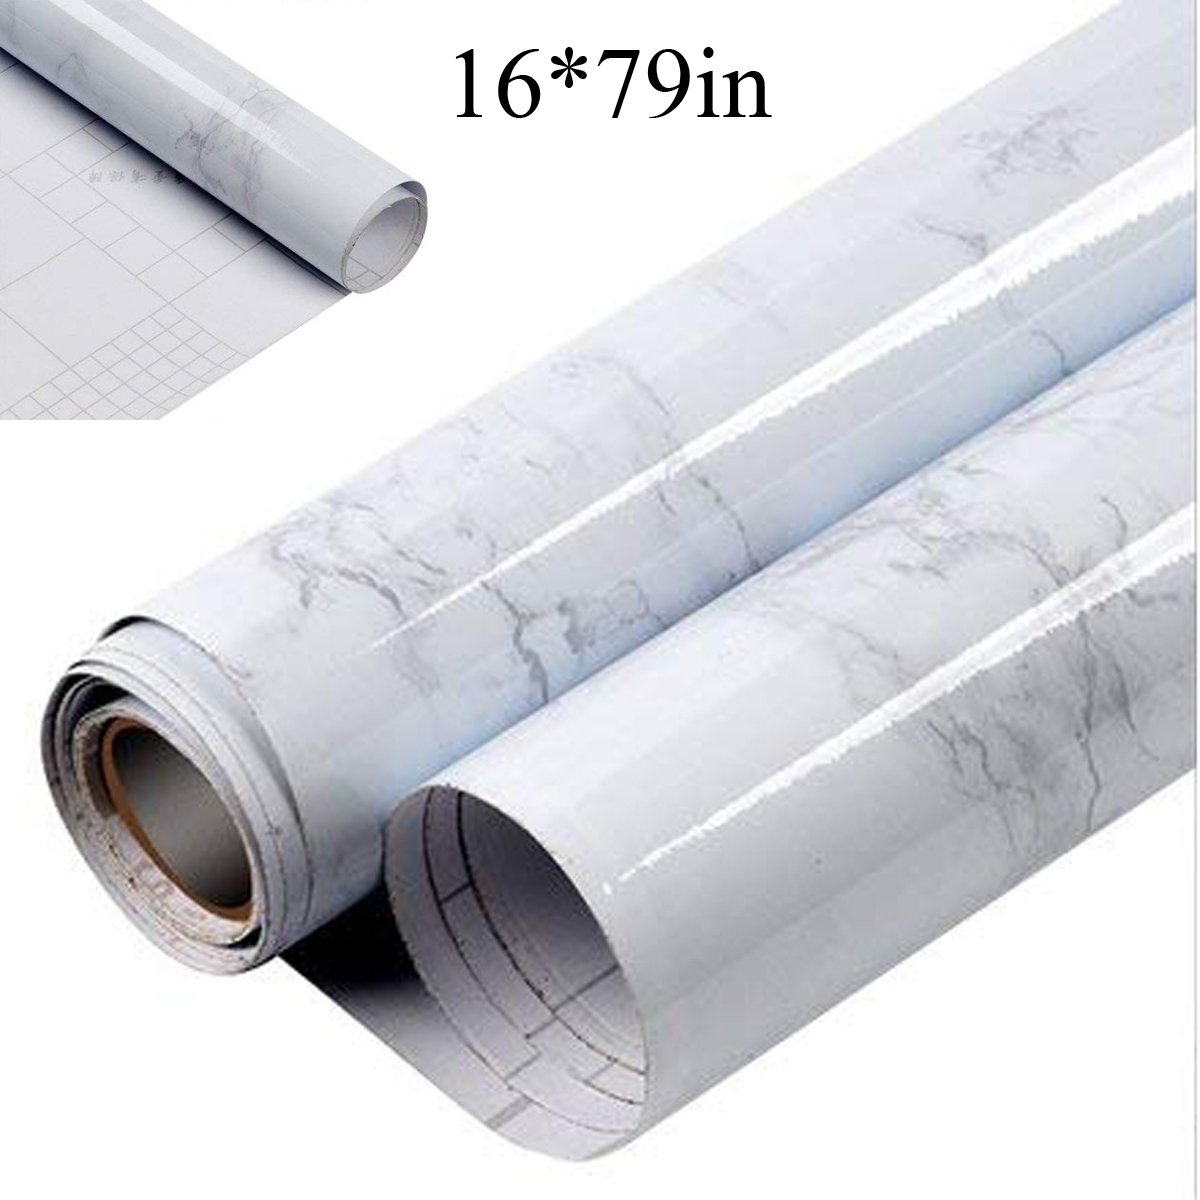 Espier Marble Contact Paper, Self-Adhesive Film Table Cover Wall Decor Sticker Waterproof Decorative Marble for Kitchen Countertop Cabinet Furniture(16¡¯¡¯x79¡¯¡¯)